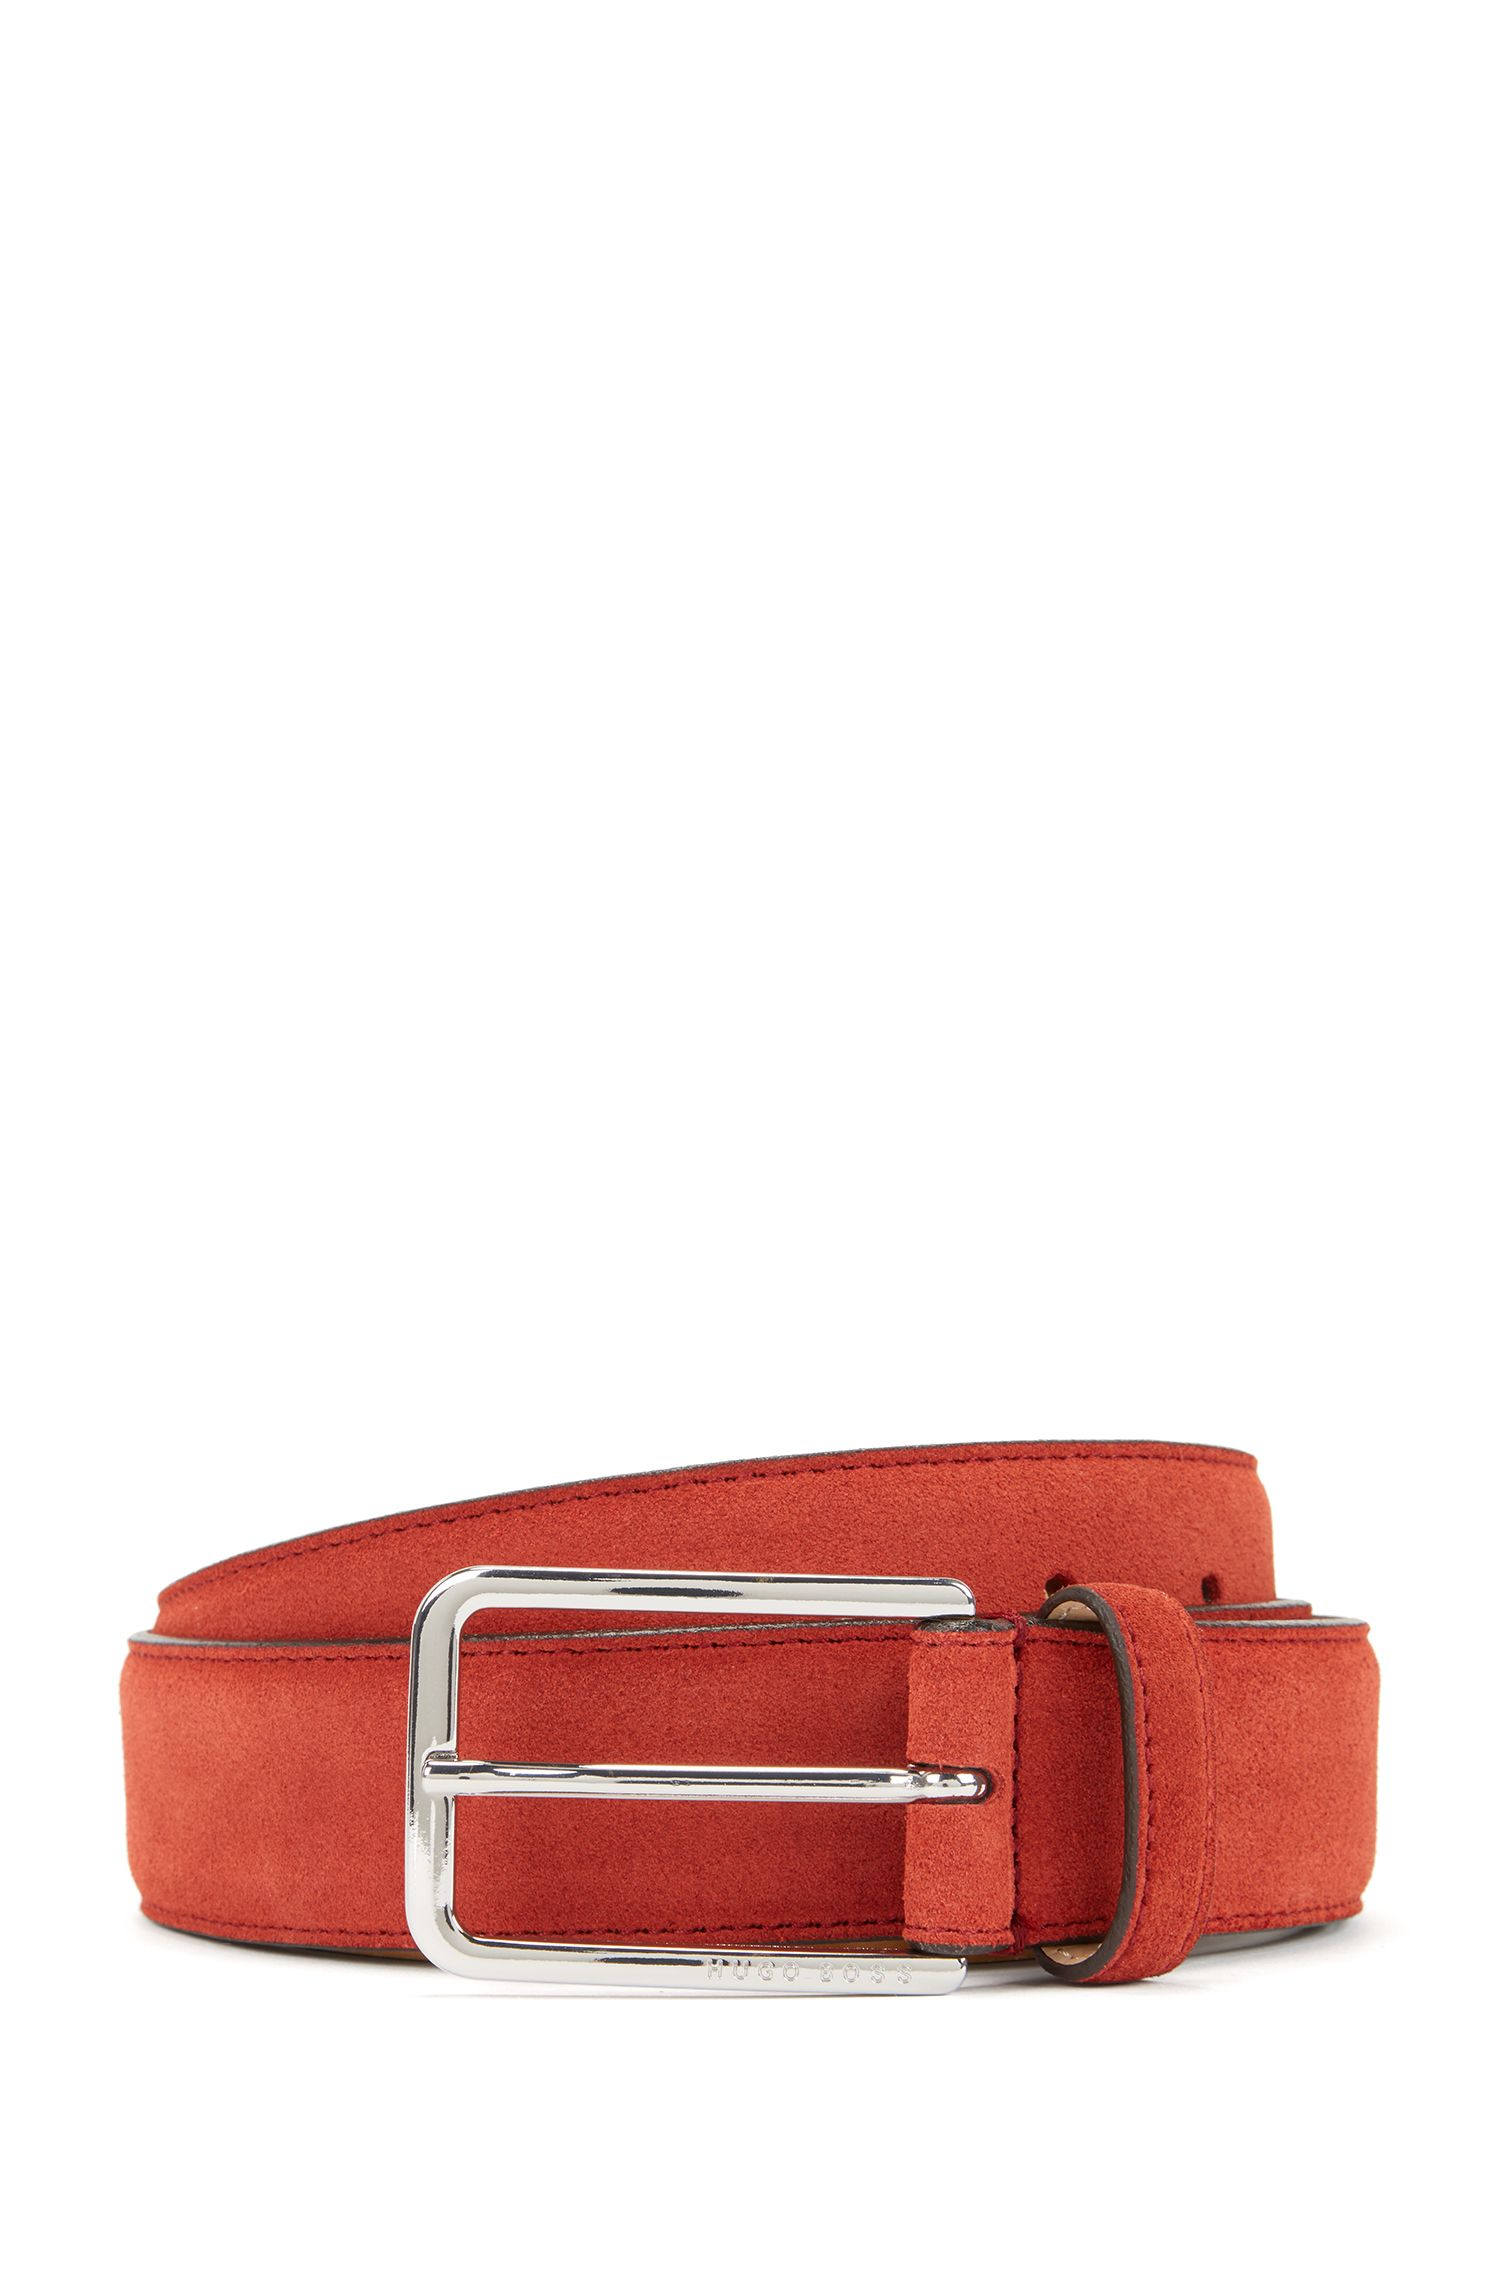 Suede belt with rounded hardware